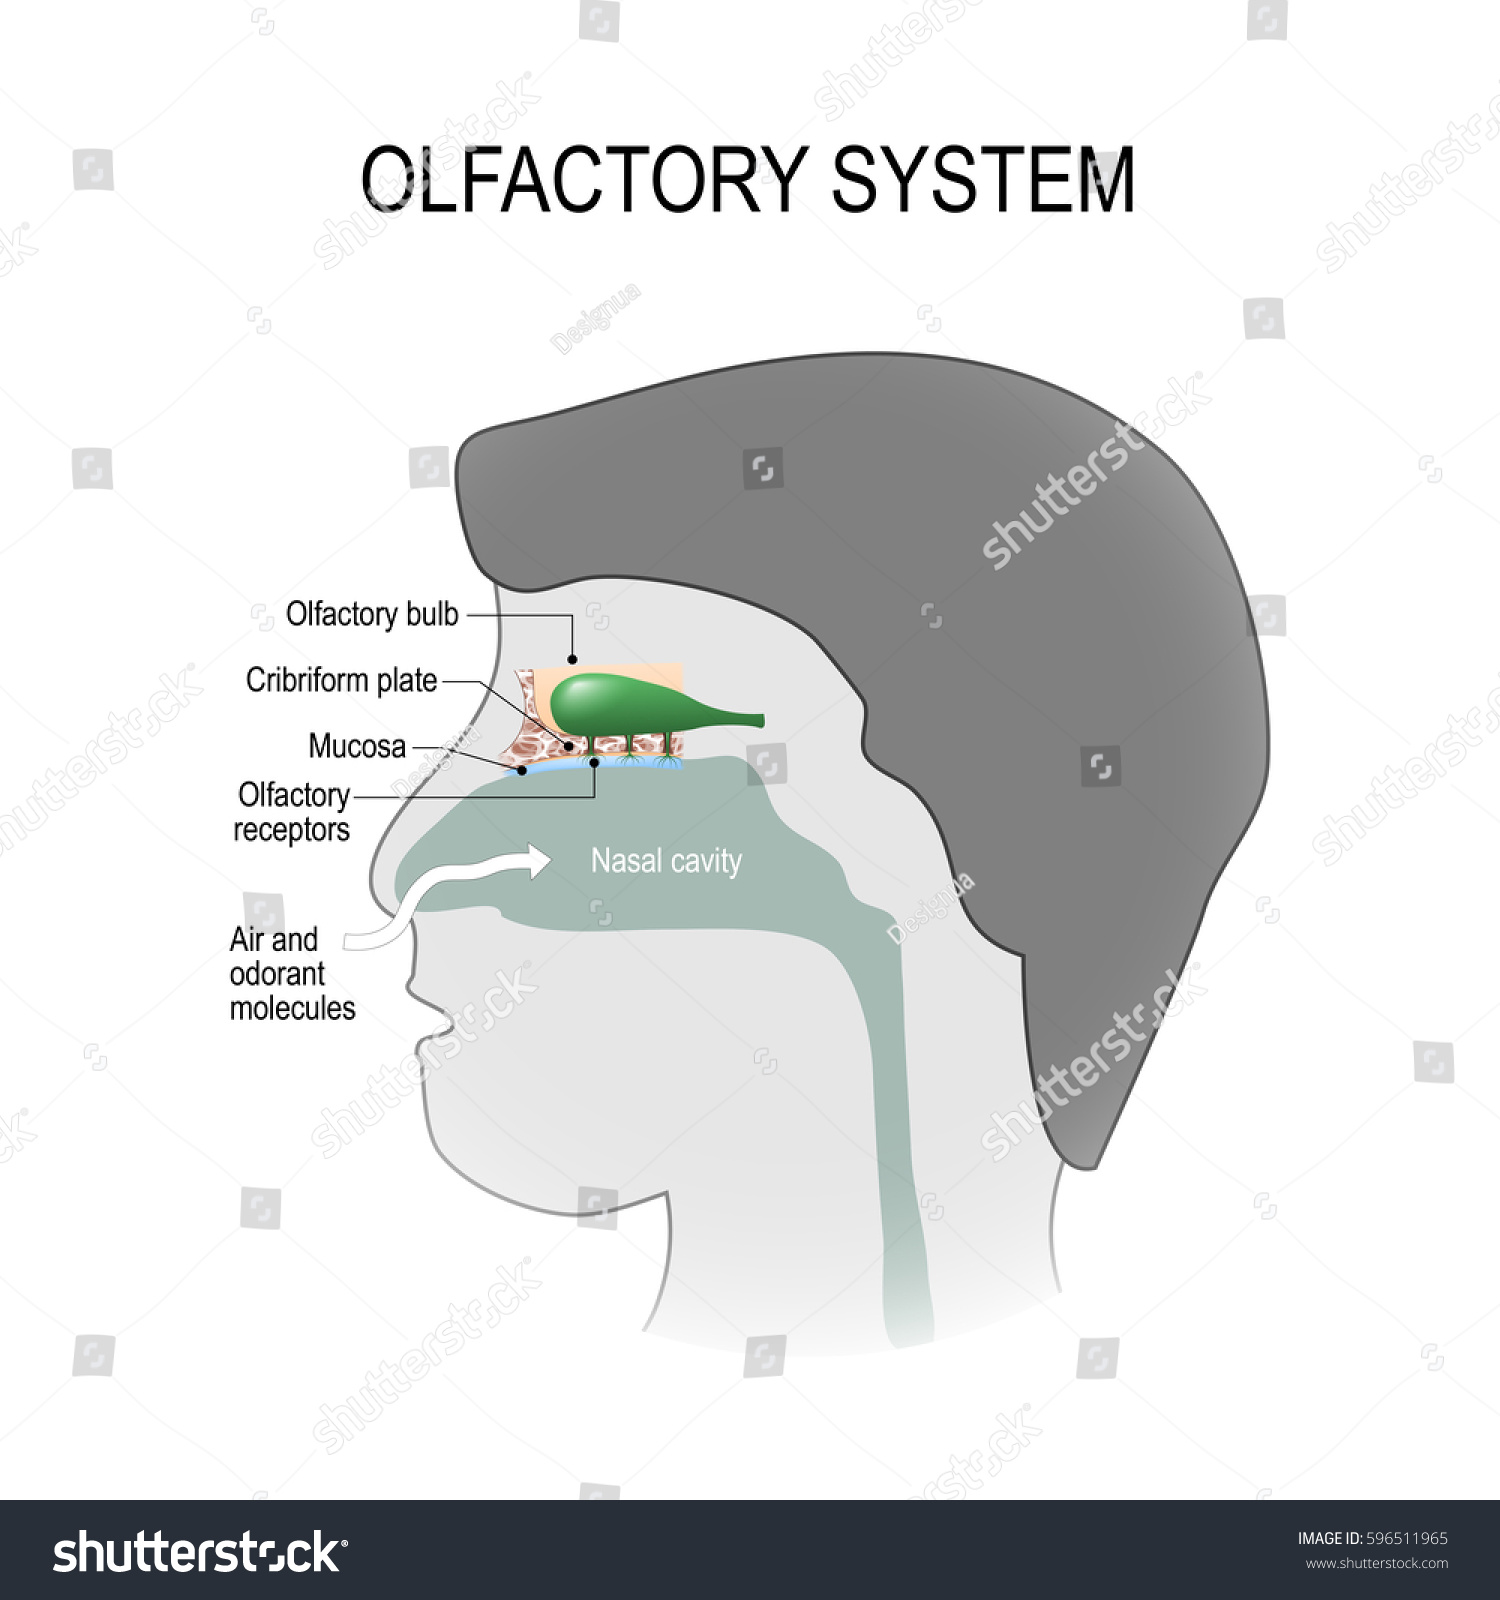 Olfactory System Human Anatomy Stock Vector 596511965 - Shutterstock